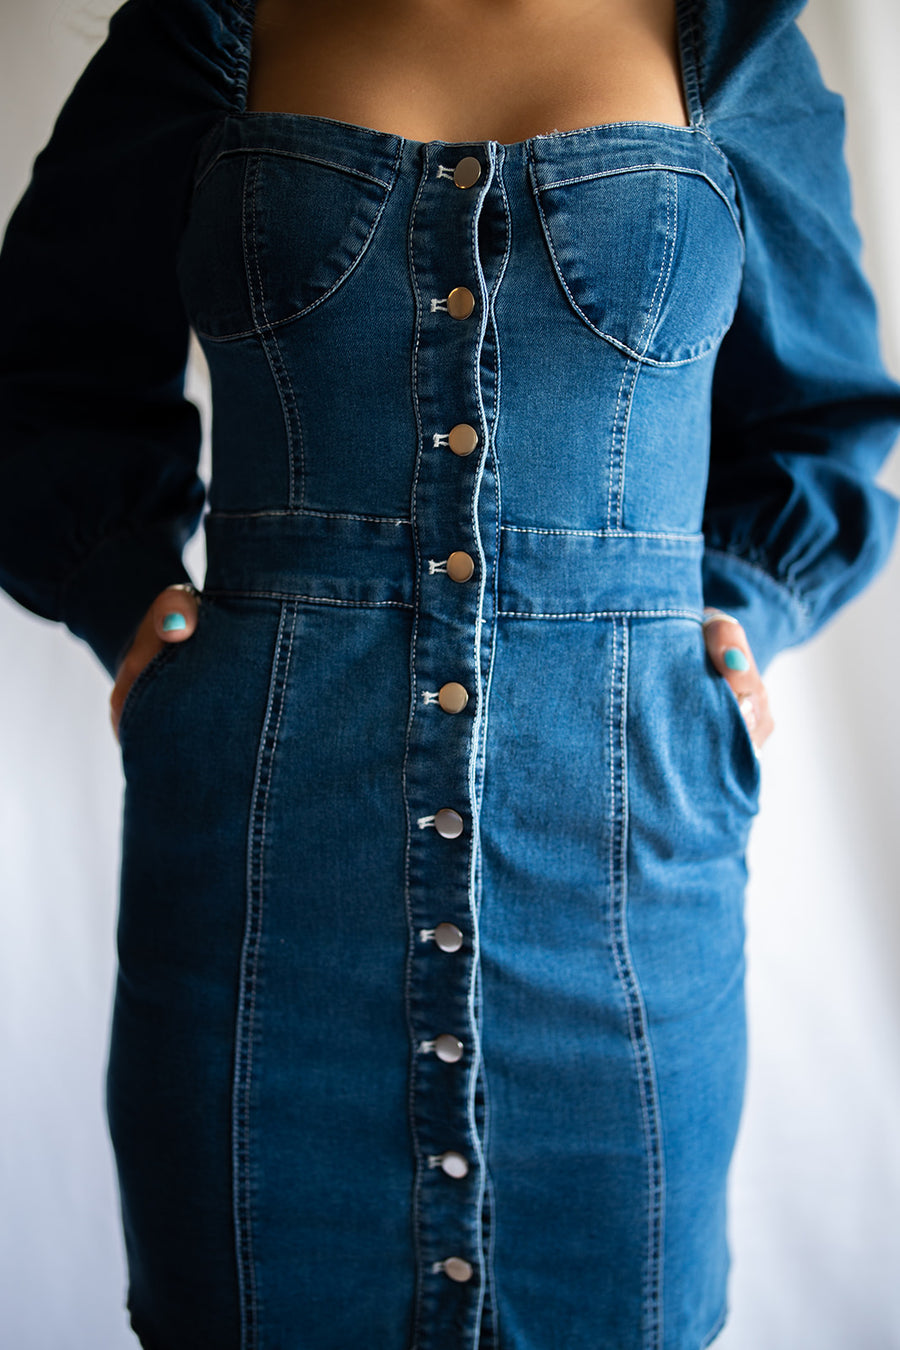 ADORE YOU DENIM DRESS